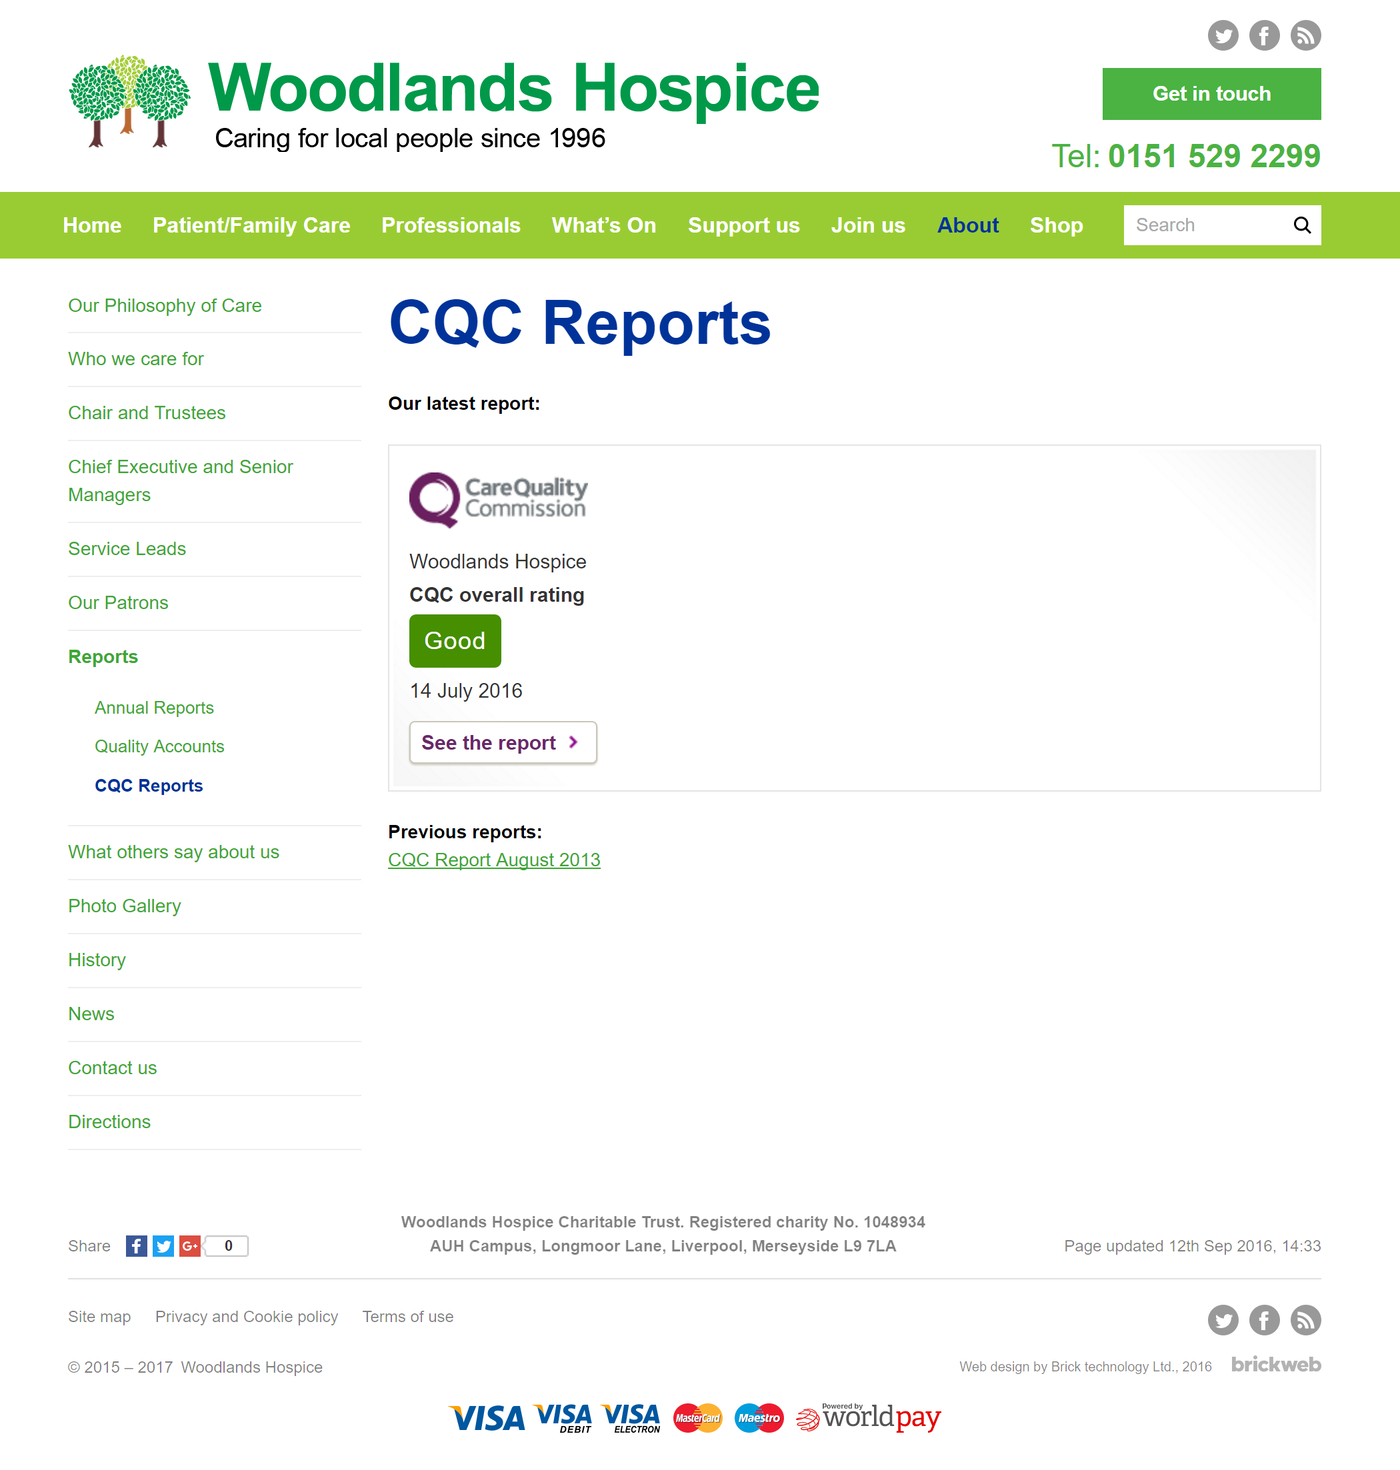 Woodlands Hospice CQC Reports